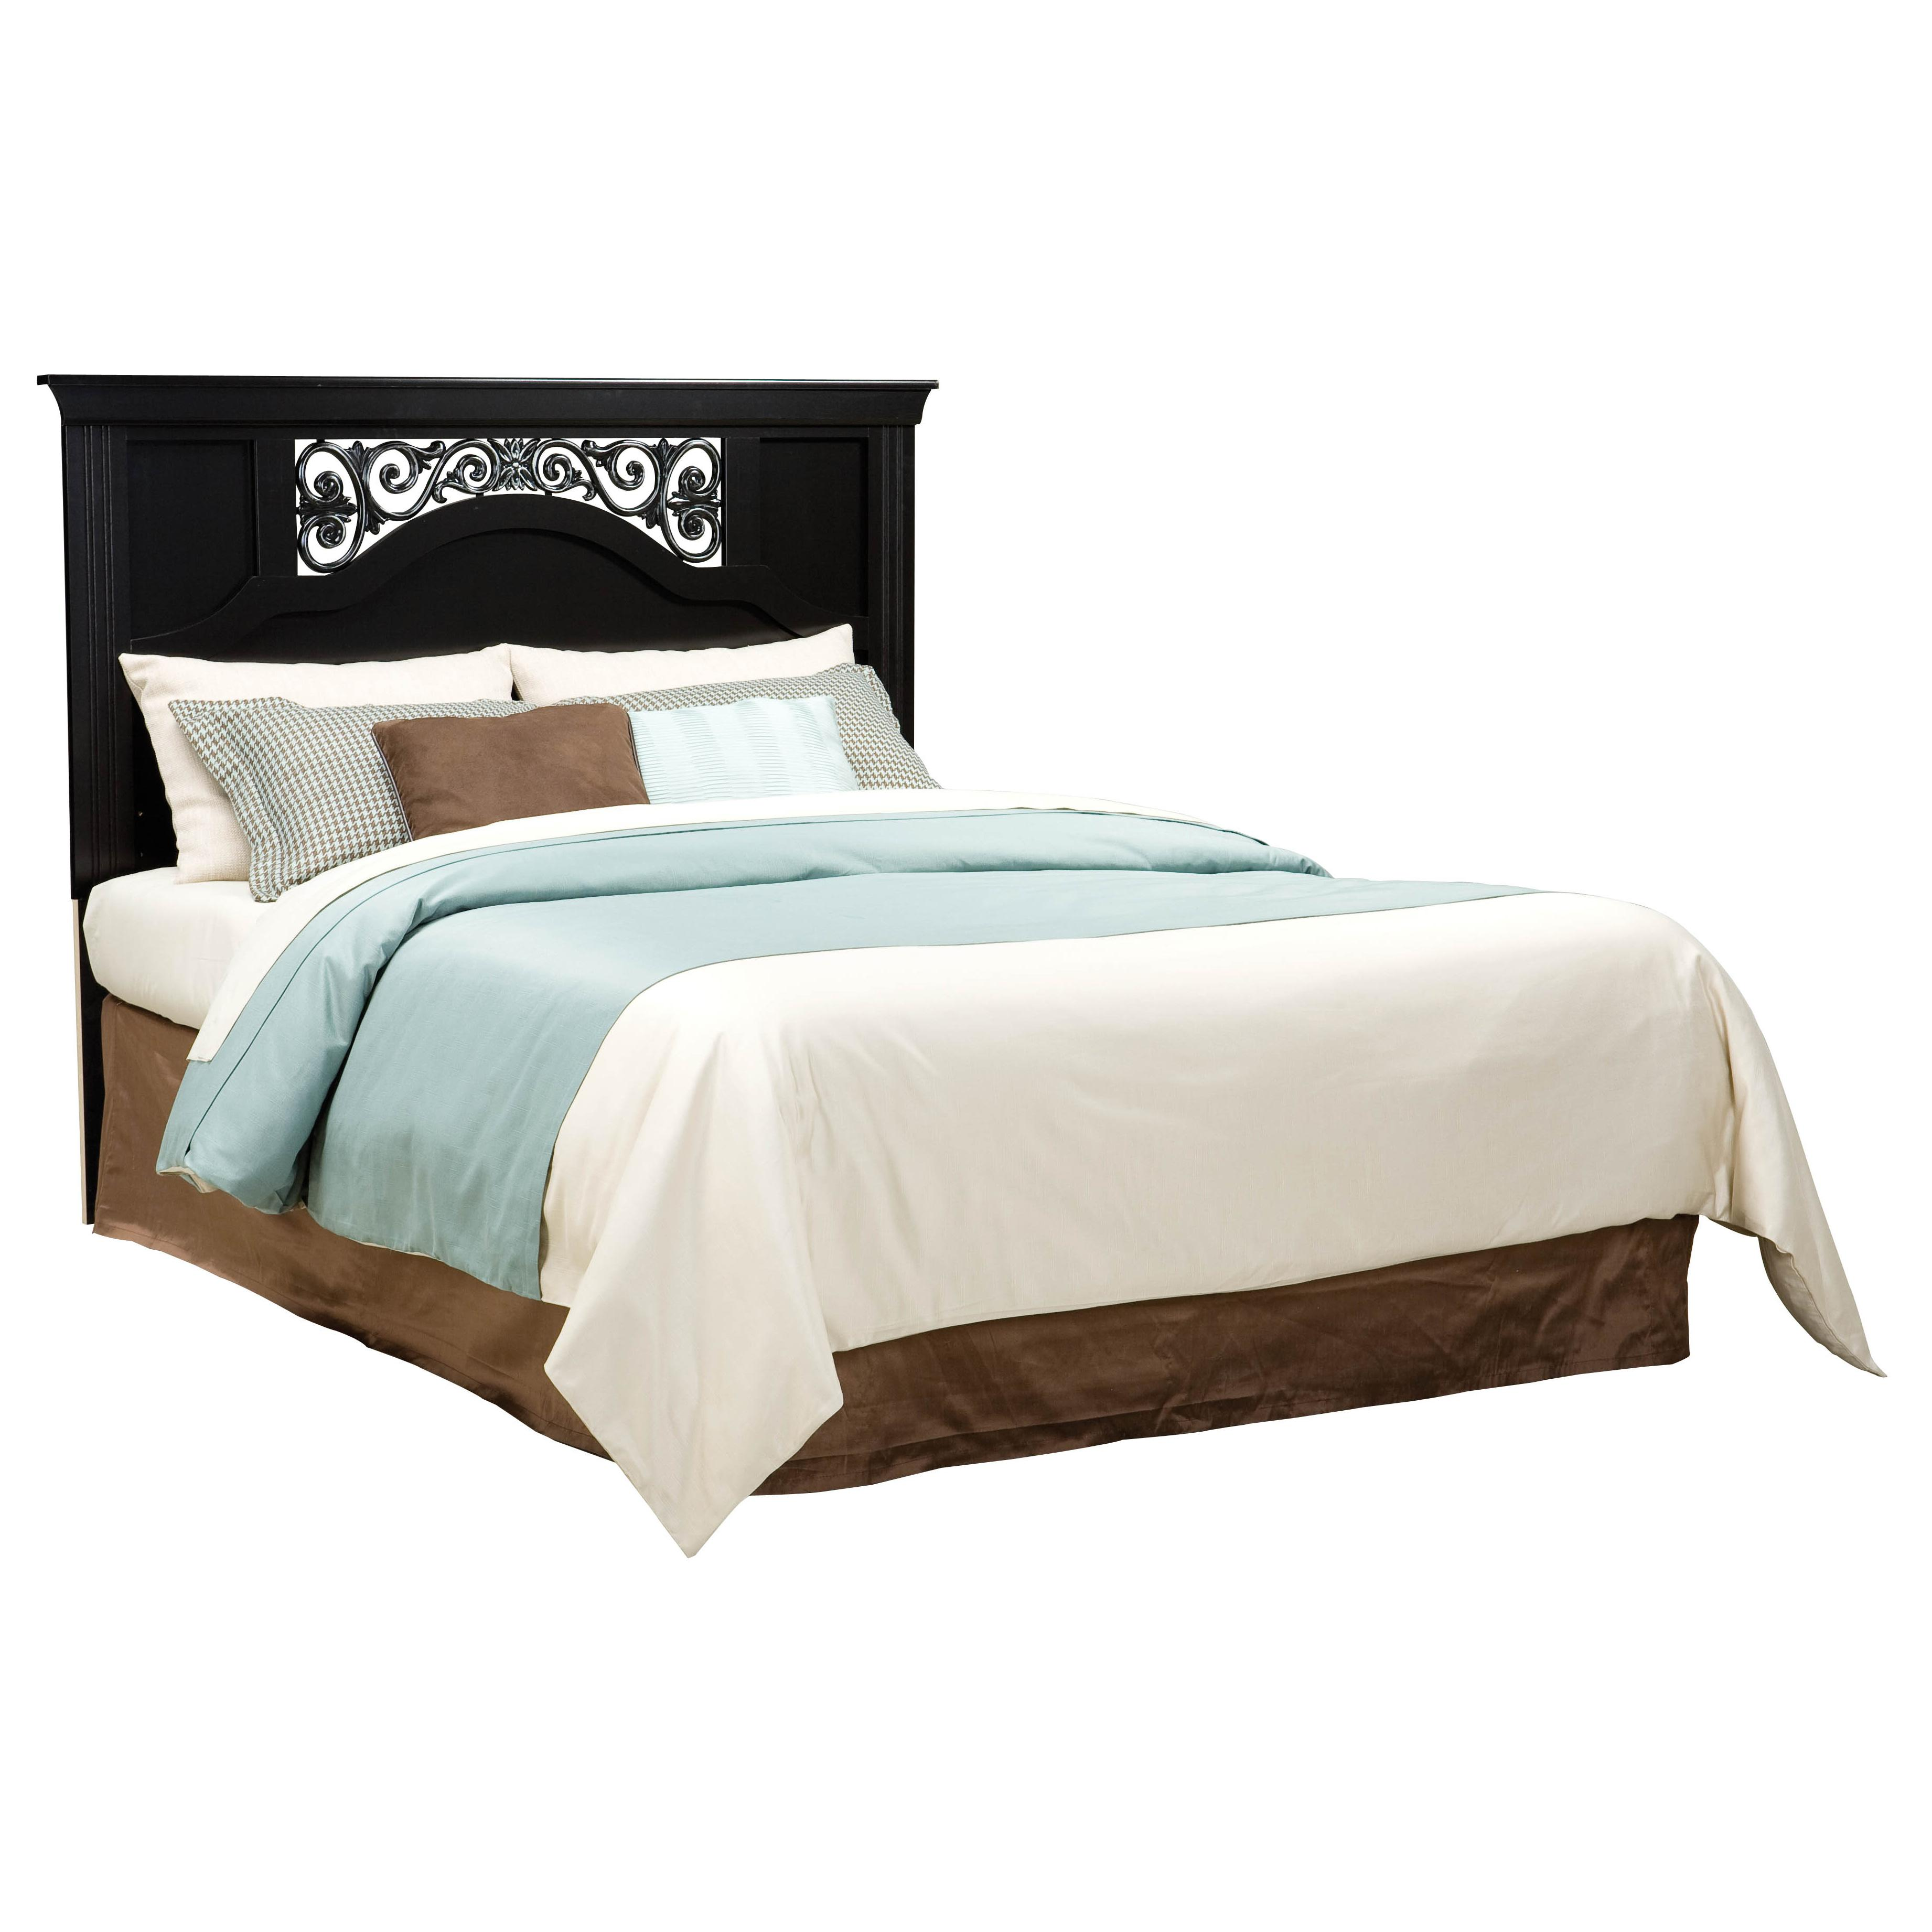 Standard Furniture Madera Full/Queen Panel Headboard Bed - Item Number: 54551